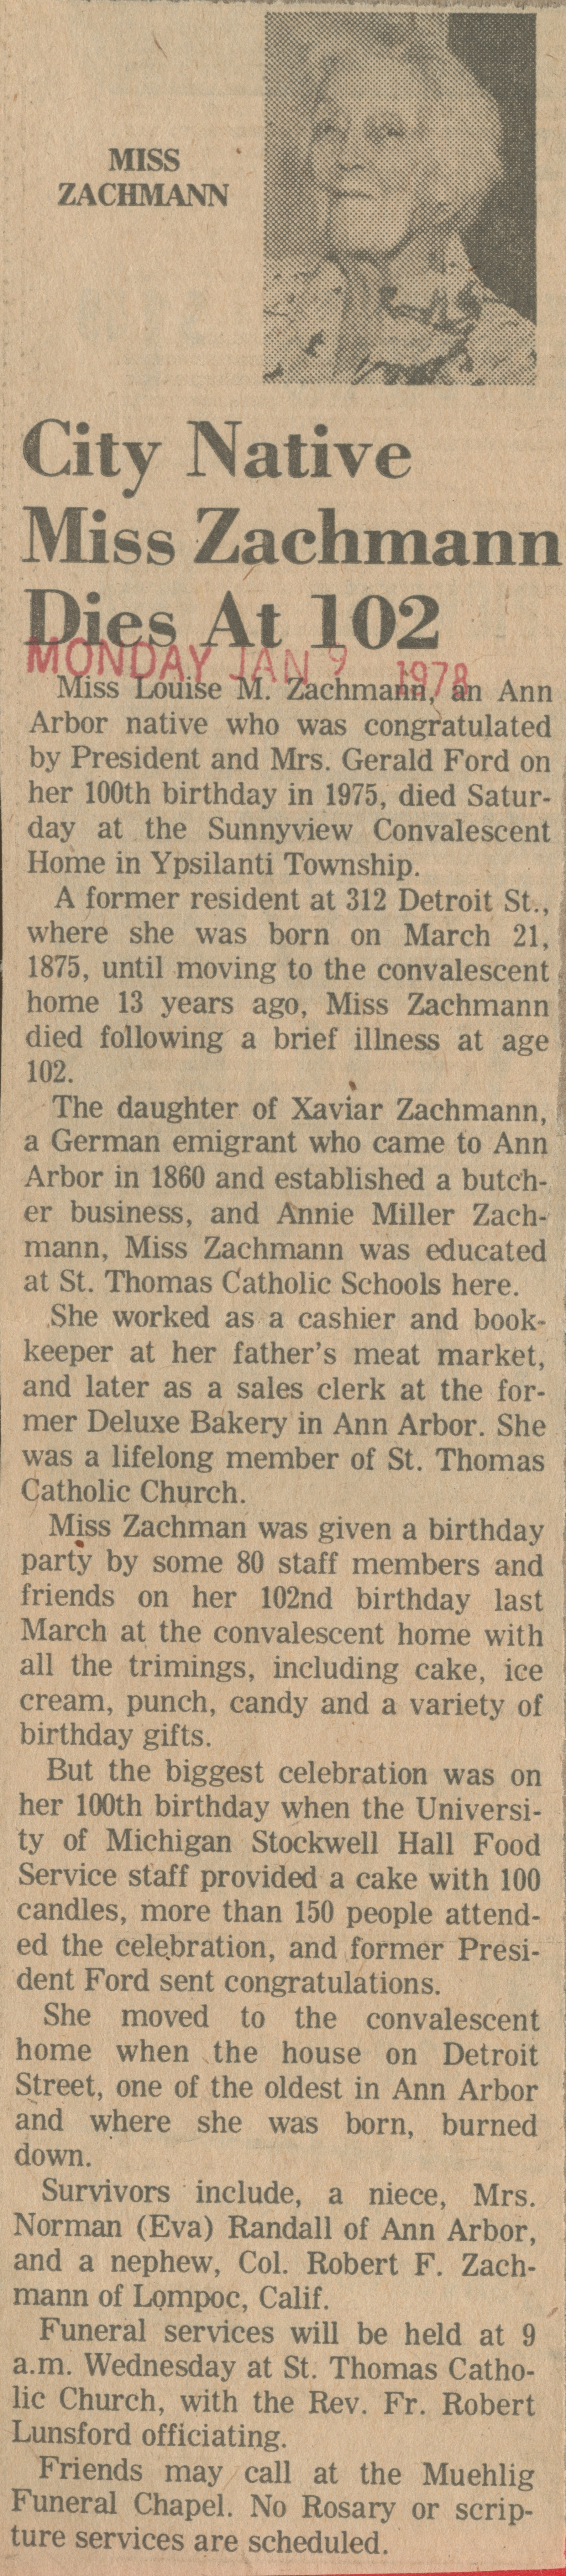 City Native Miss Zachmann Dies At 102 image